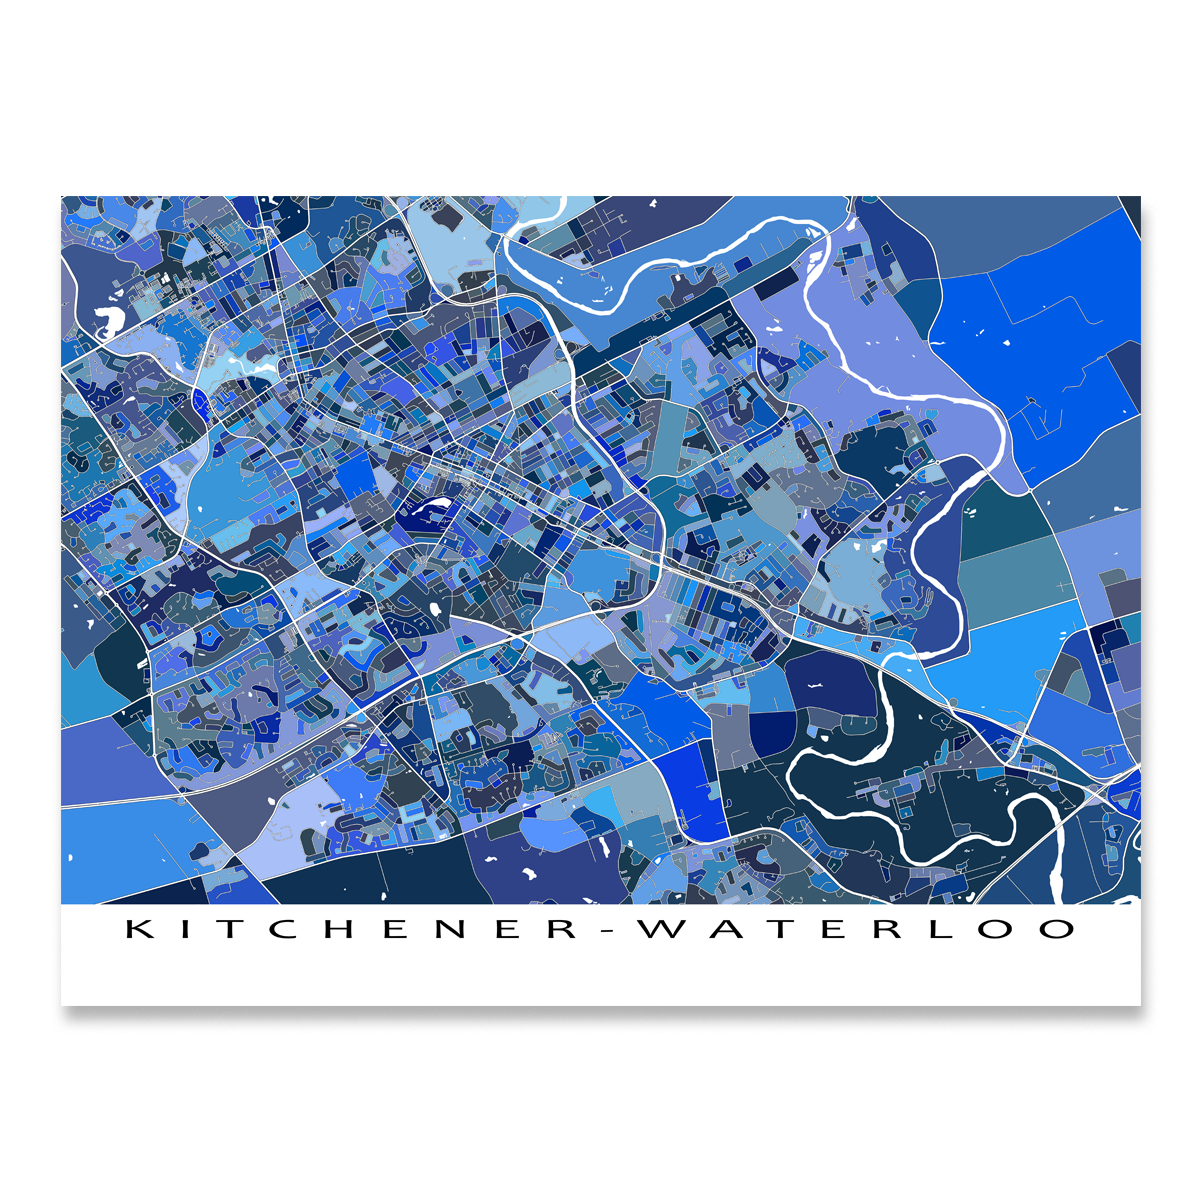 Kitchener - Waterloo Map Print, Canada on photographs of canada, provinces of canada, edmonton canada, printable map of canada, outline political map of canada, world map of canada, large map of canada, landforms of canada, world atlas of canada, map of us and canada, topography of canada, alberta canada, resource map of canada, montreal canada, ontario canada, physical map of canada, lakes of canada, atlas map of canada, google maps canada, capital of canada,